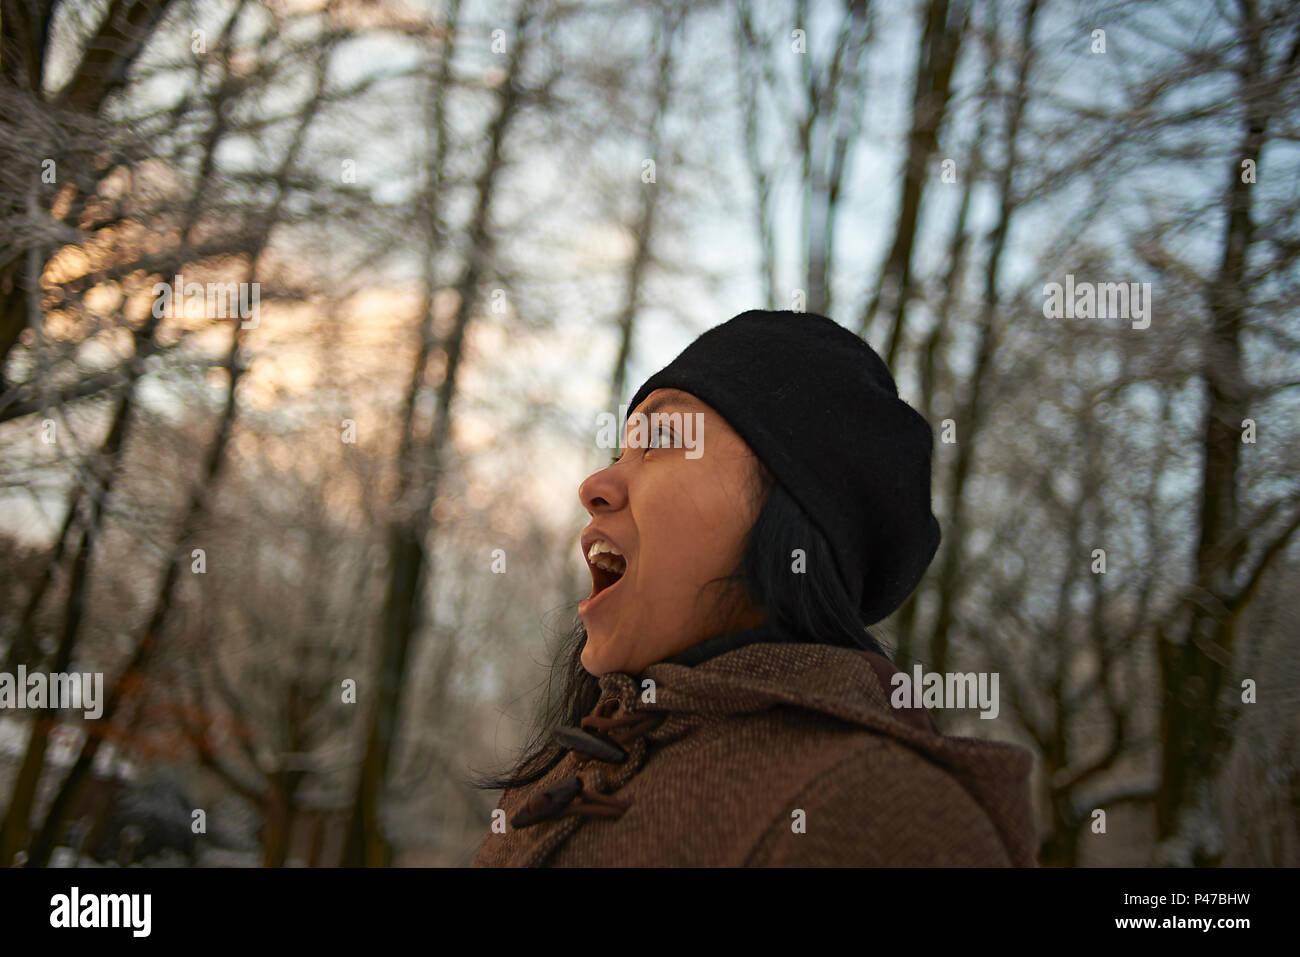 Profile view of an Asian woman in winter clothing in a forest at sunrise experiencing first snow in winter sunshine Stock Photo